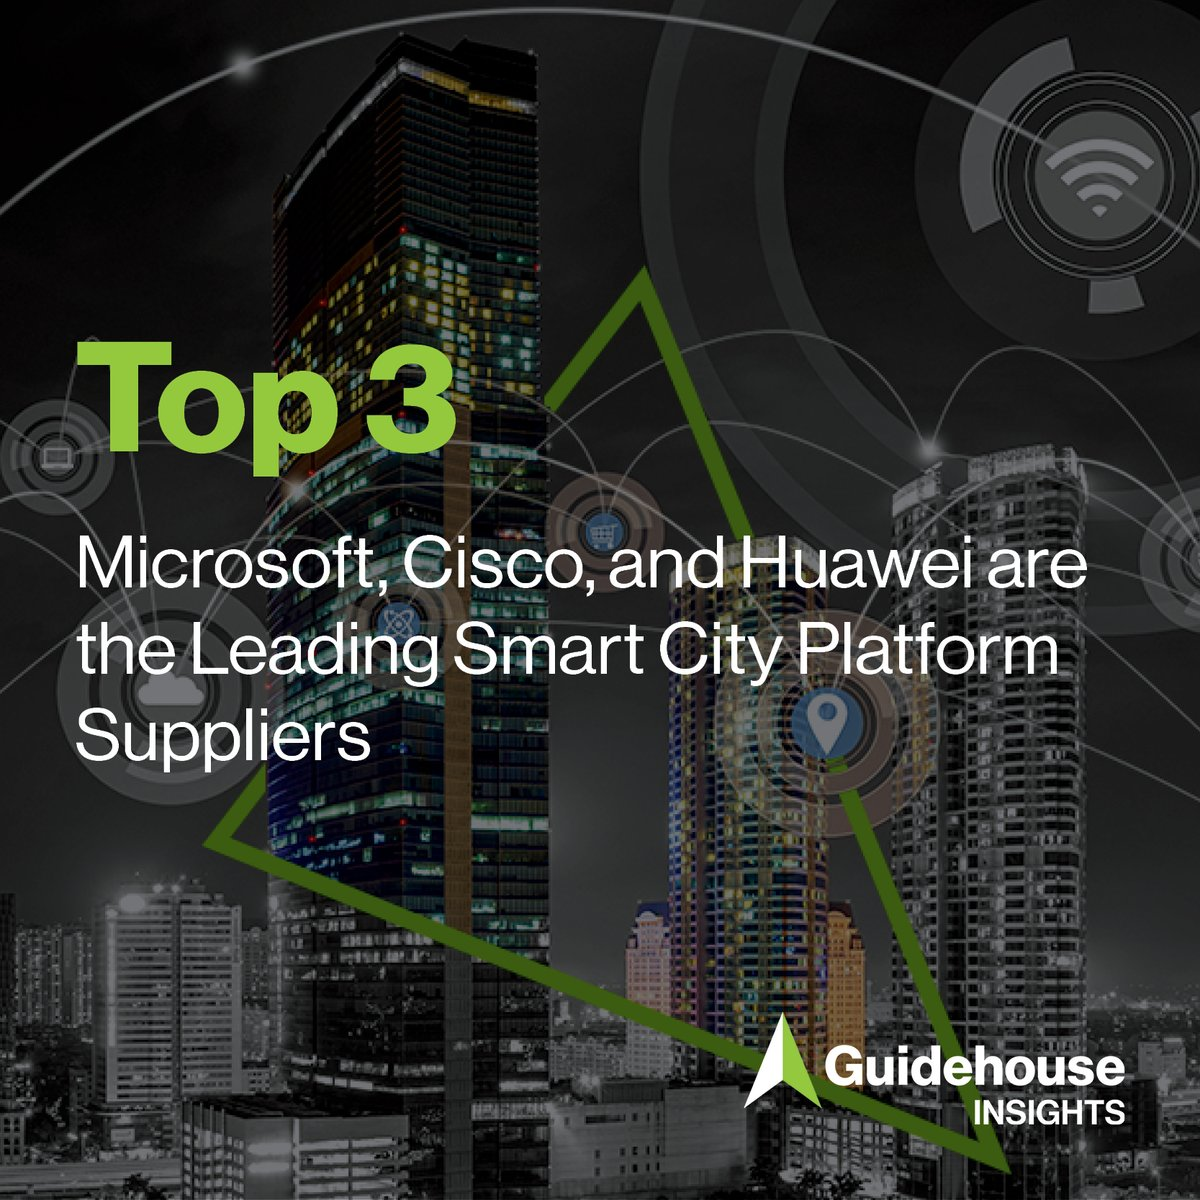 A new Leaderboard Report from @WeAreGInsights evaluates the strategy and execution of 12 #smartcity platform suppliers, with @Microsoft, @Cisco, & @Huawei ranked as the leading market players: https://guidehou.se/30smKPJpic.twitter.com/VFOgBBZfjo